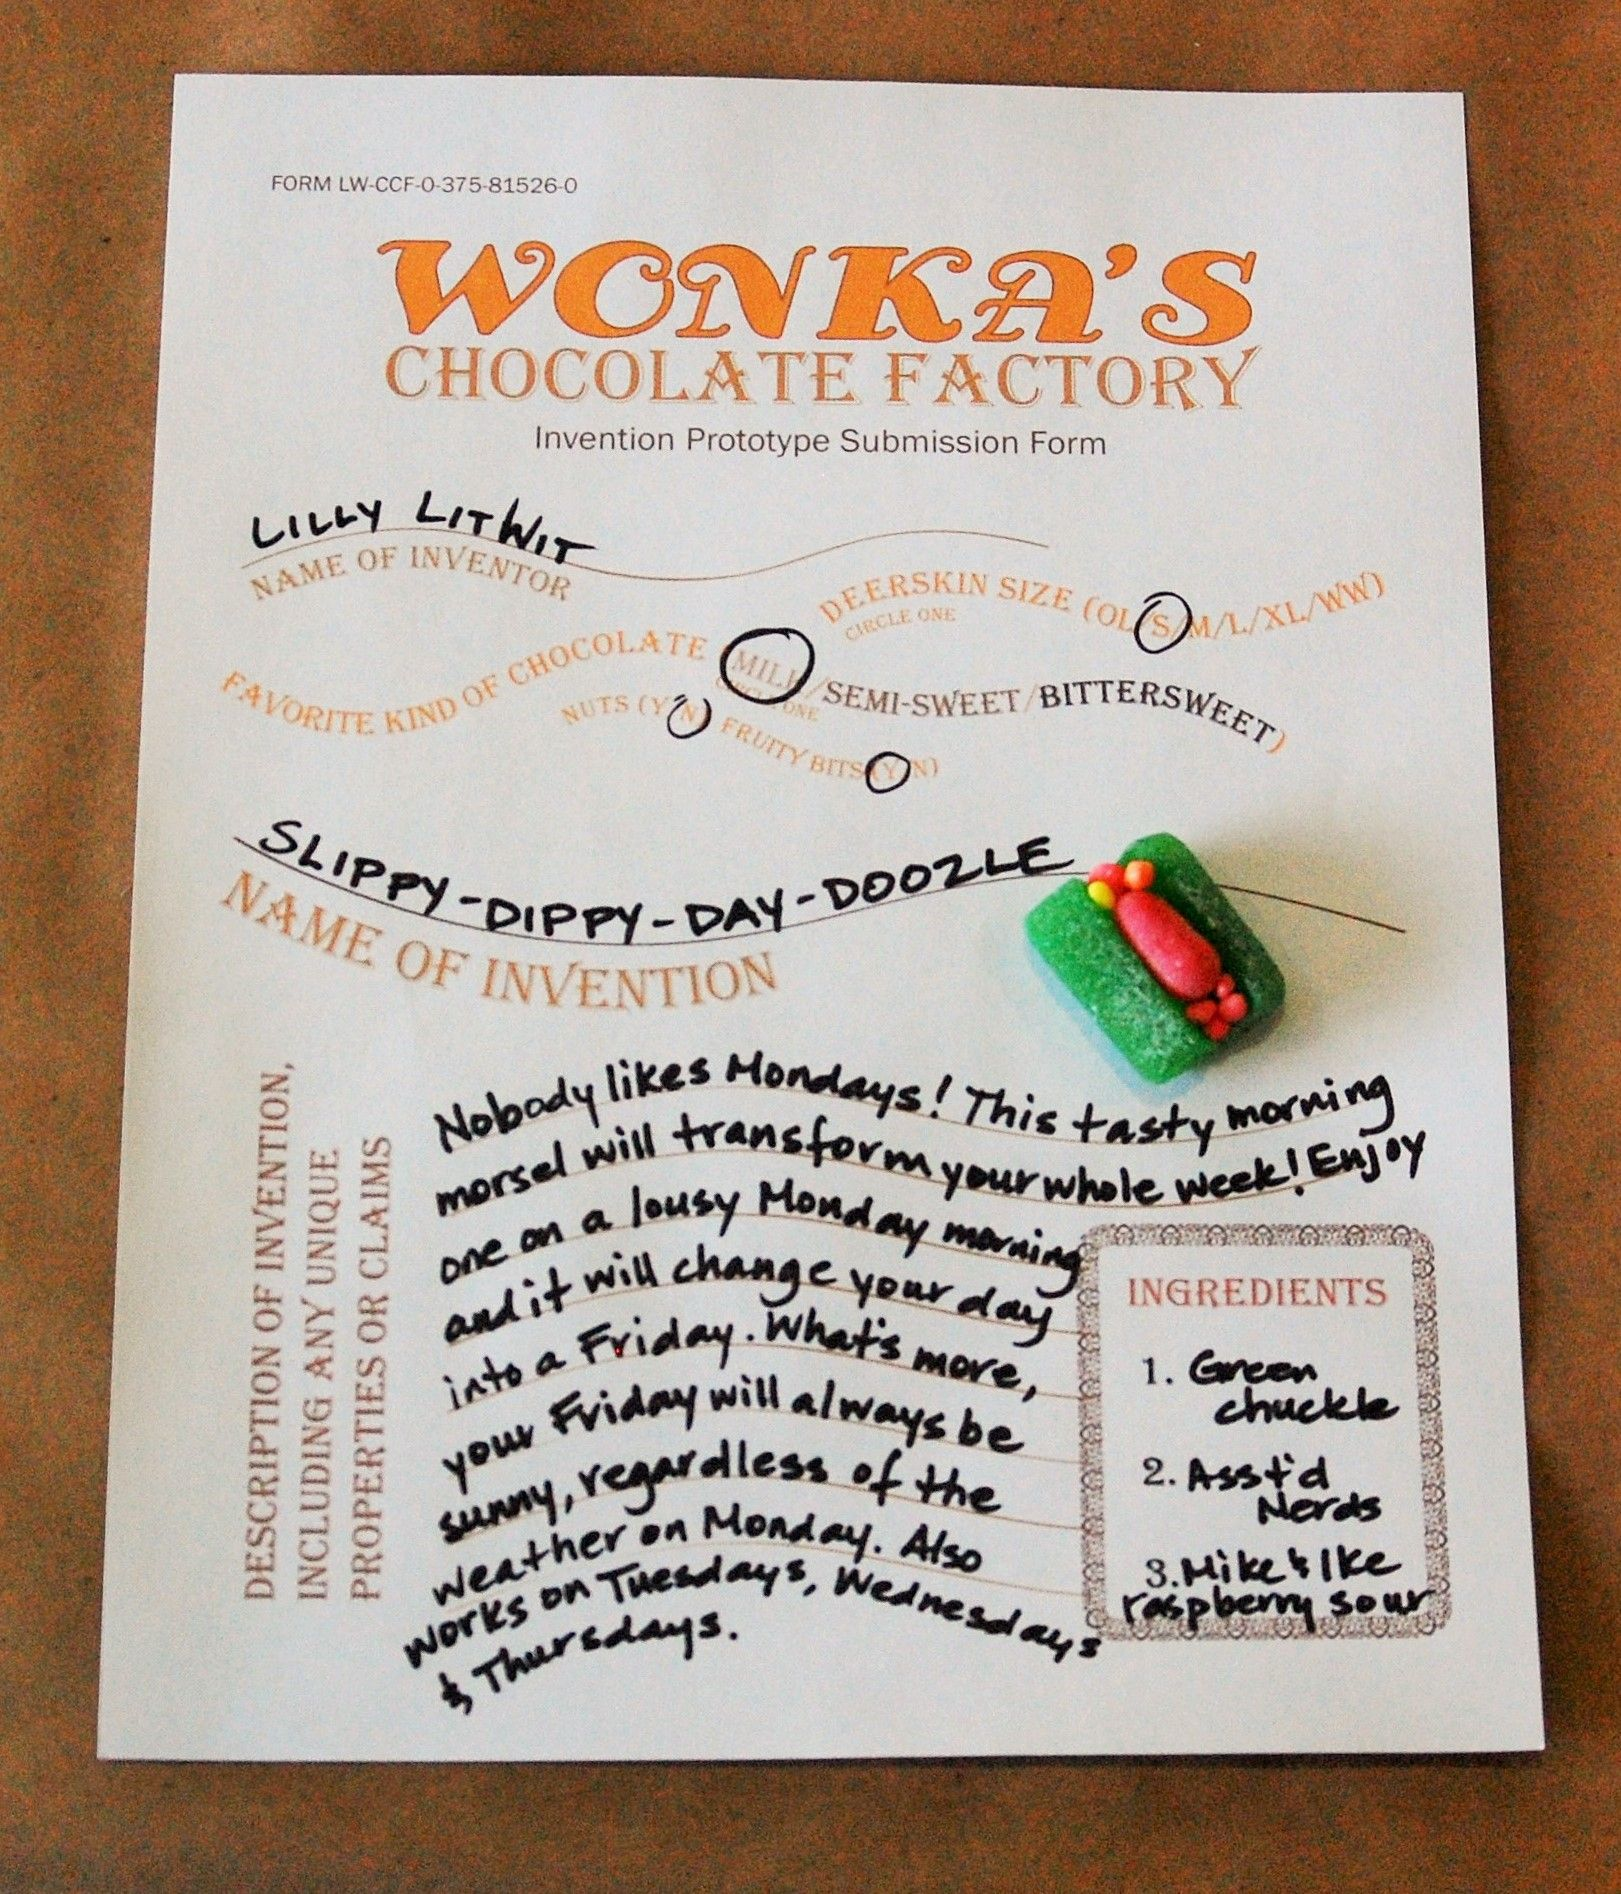 charlie and the chocolate factory activity sheets prototype invention form for an exciting new candy from the litwits kit for charlie and chocolate